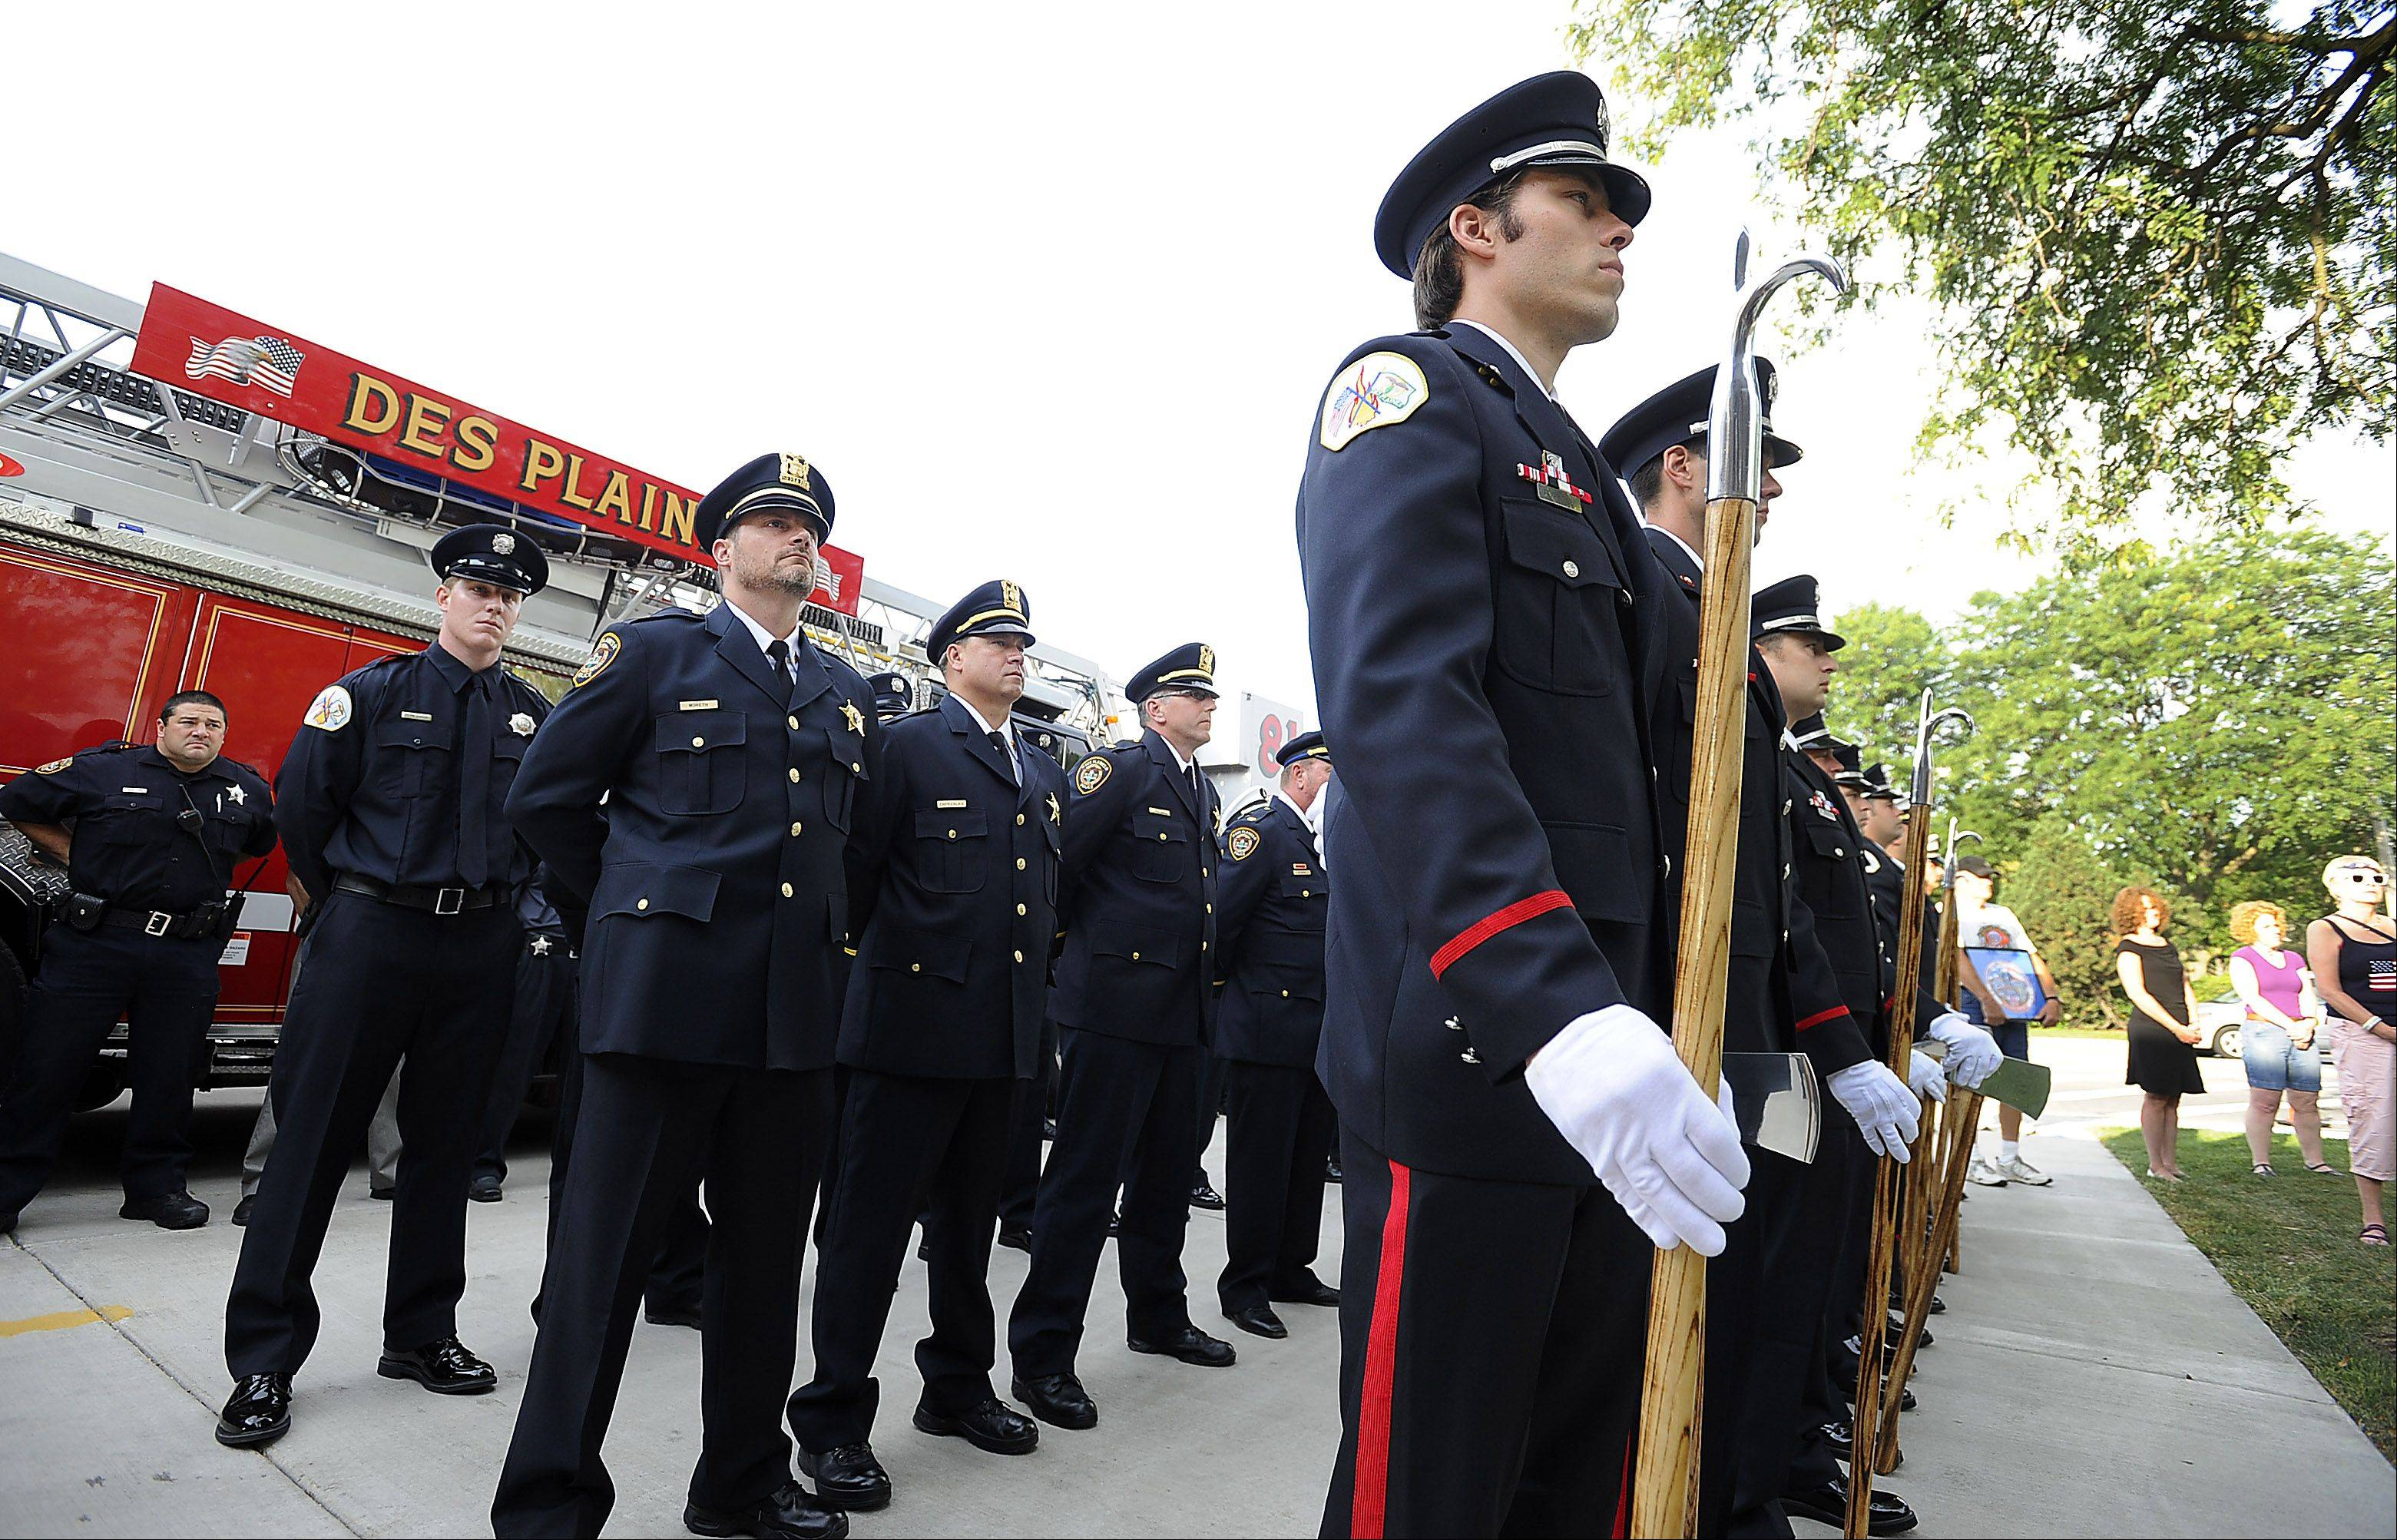 Eric Zack of the Des Plaines Fire Department stands at attention with others from the fire and police departments as the colors are raised at the Sept. 11 memorial and Patriot Day ceremony at fire station 1 on Wednesday.